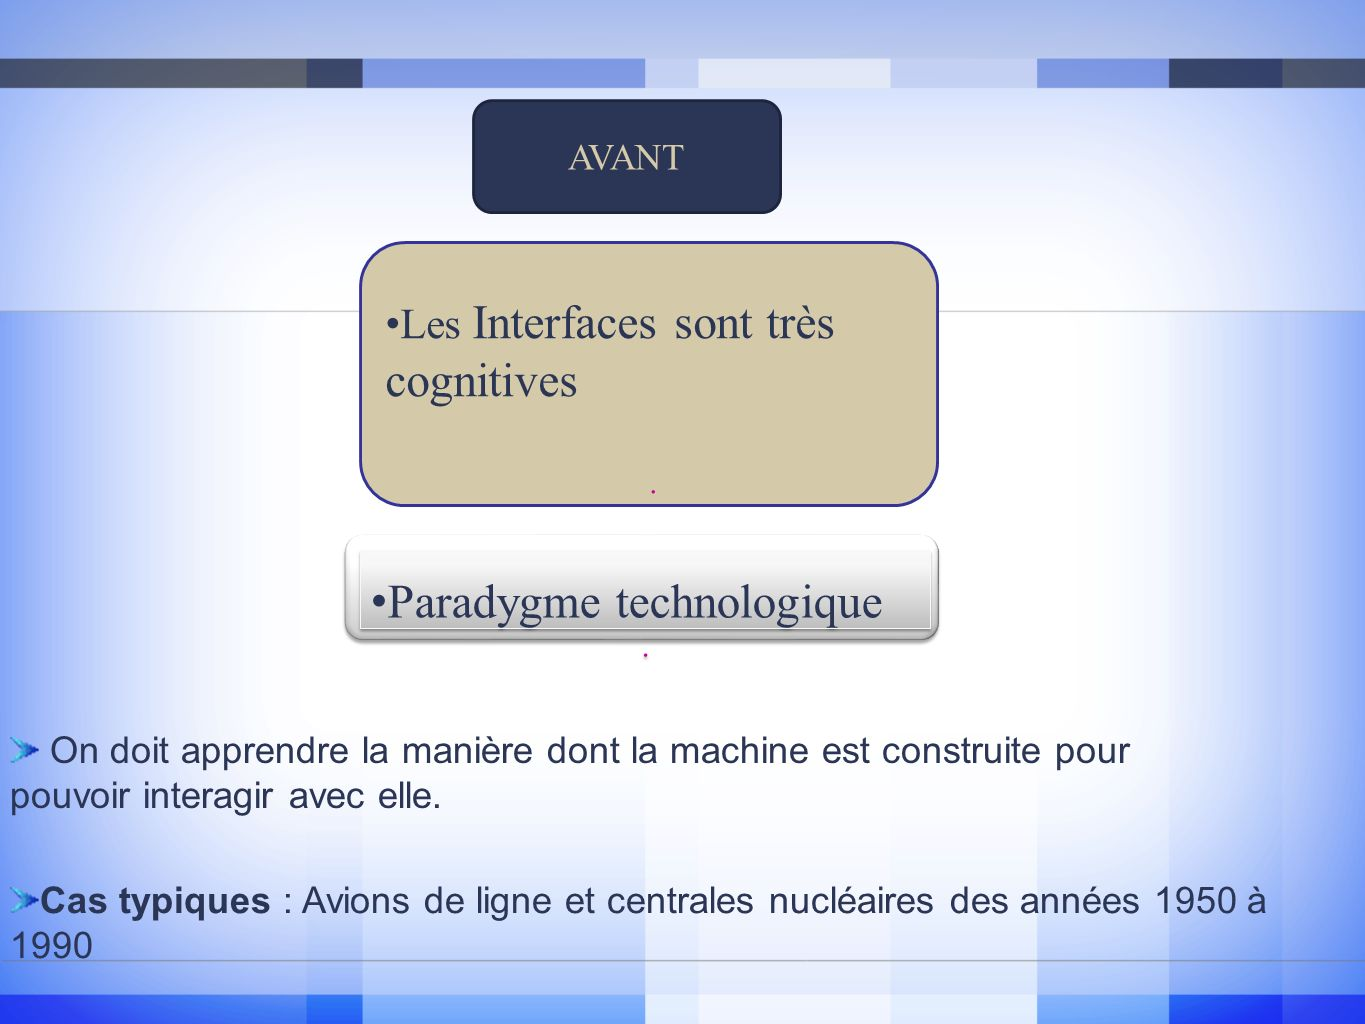 Paradygme technologique